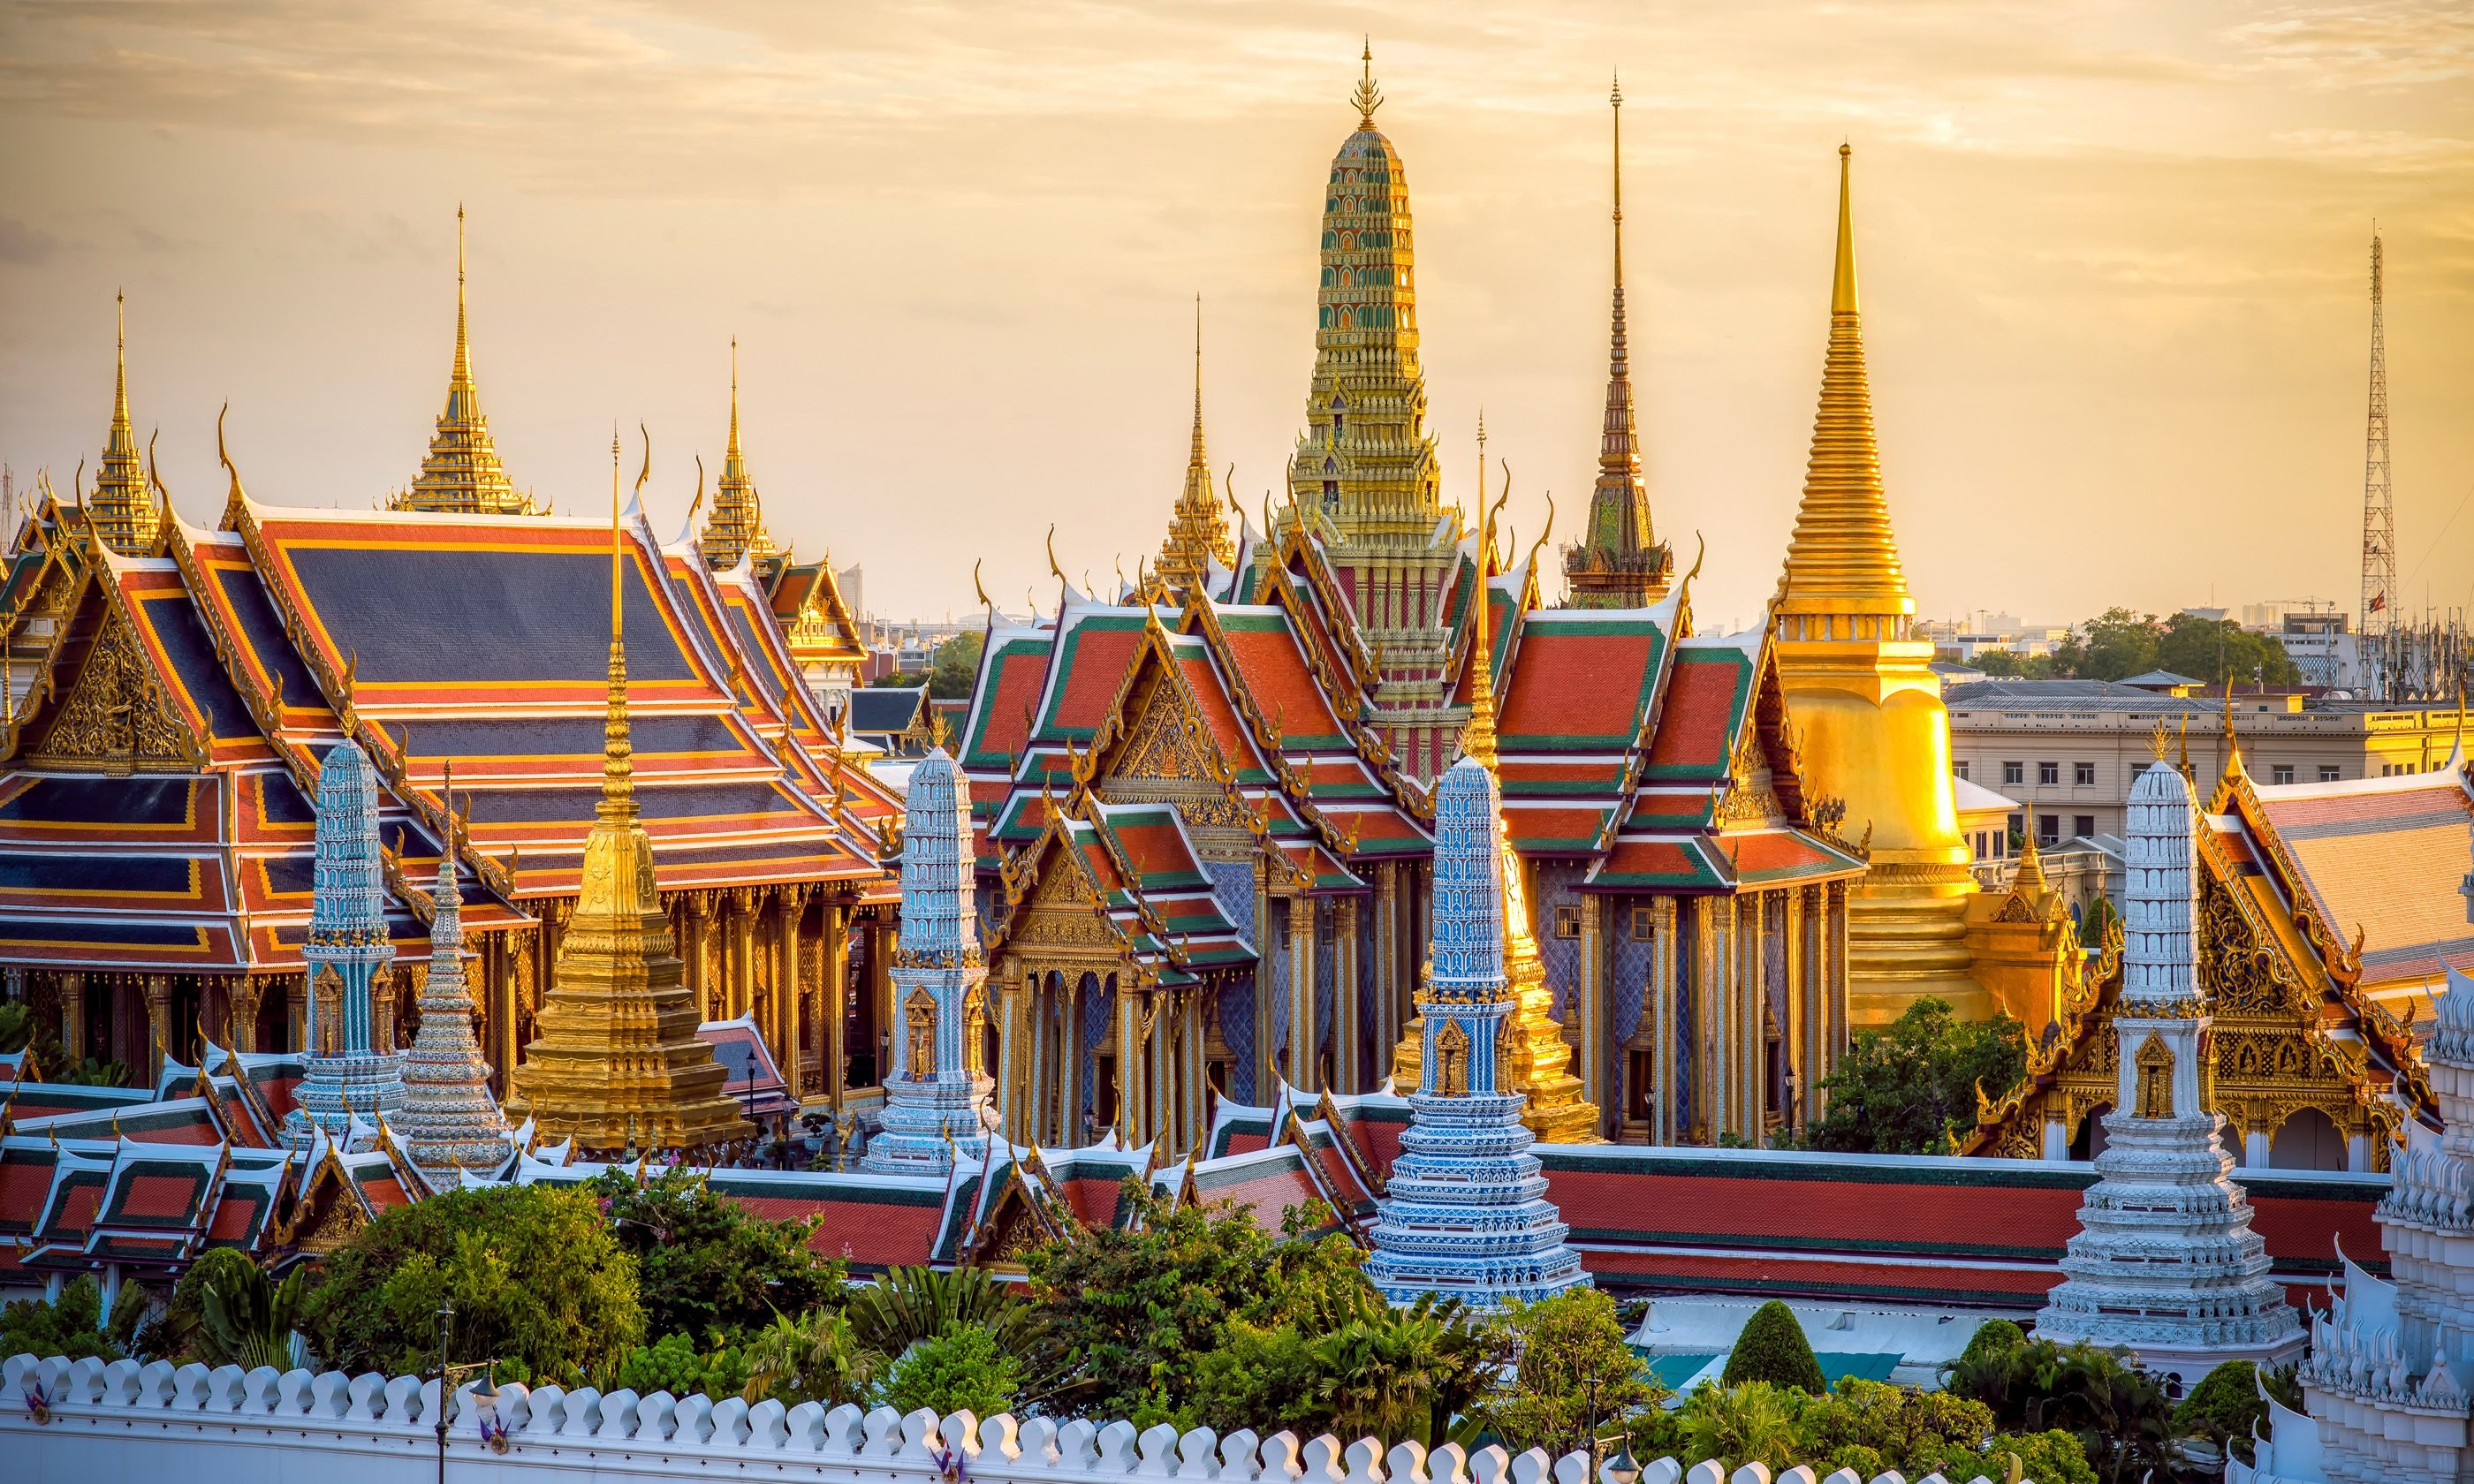 Grand Palace at sunset (Shutterstock.com)